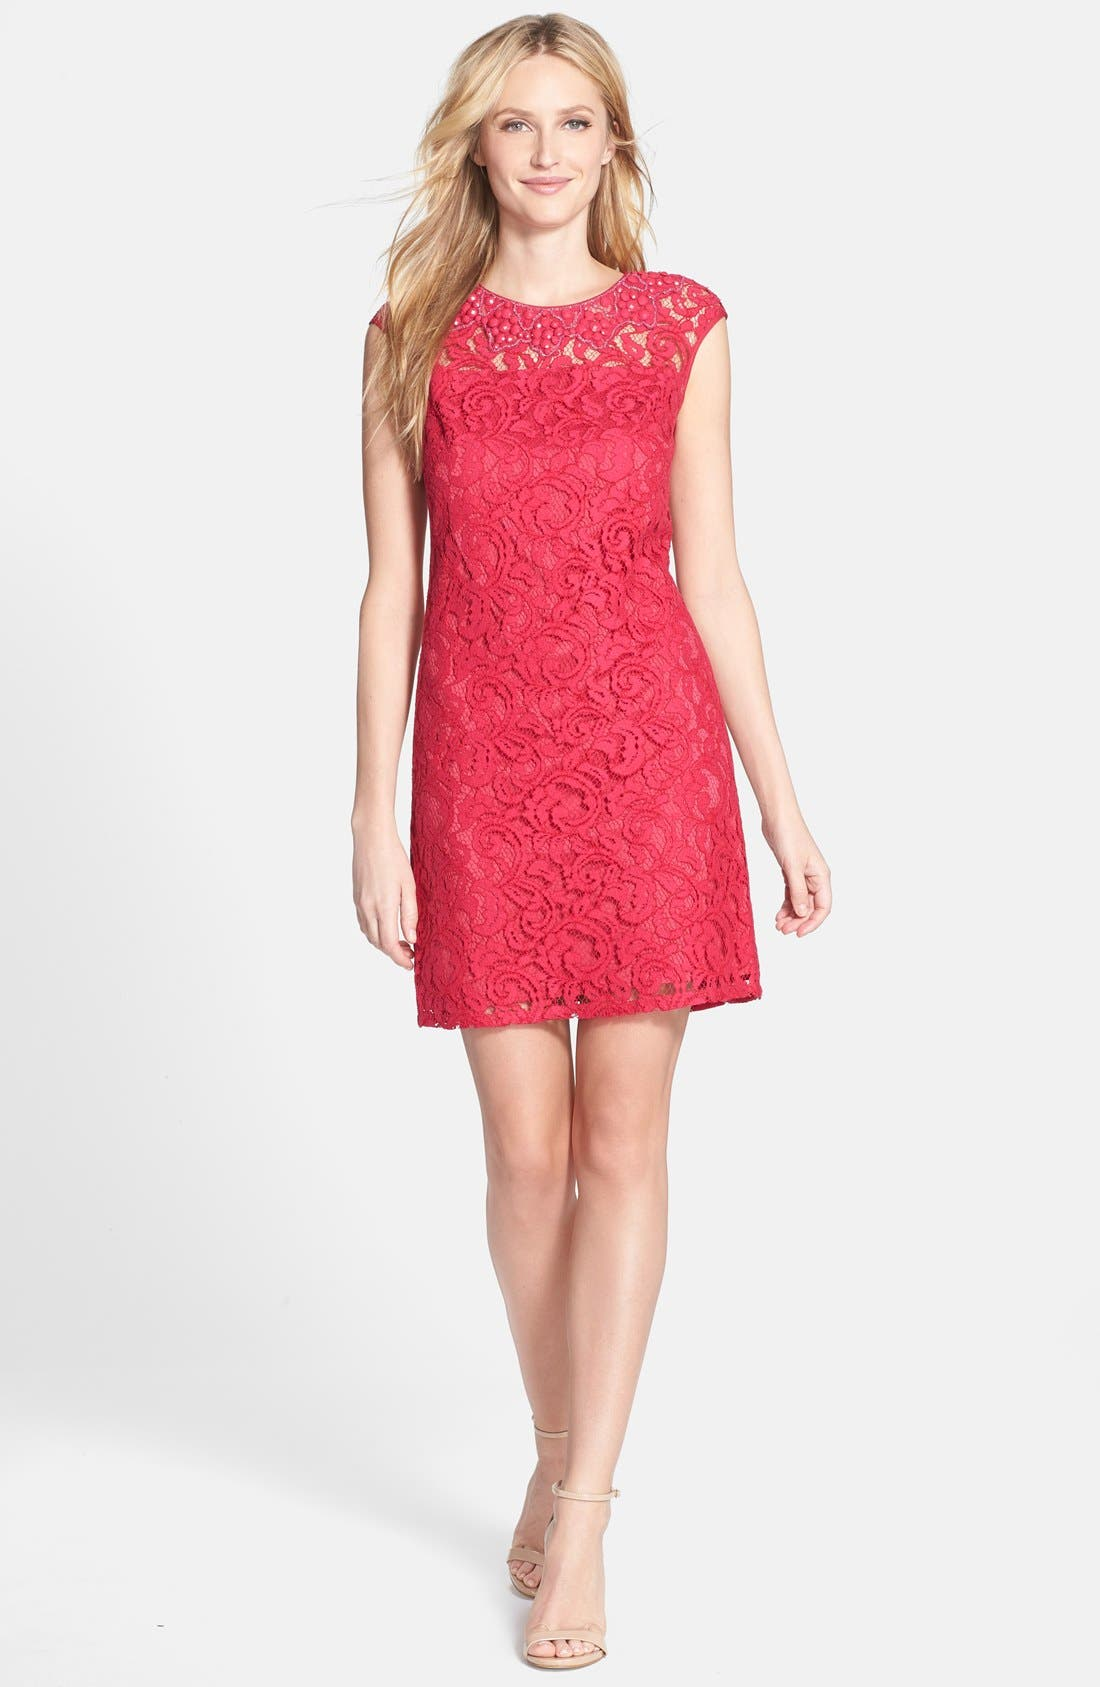 Alternate Image 1 Selected - Adrianna Papell Beaded Lace Sheath Dress (Regular & Petite)